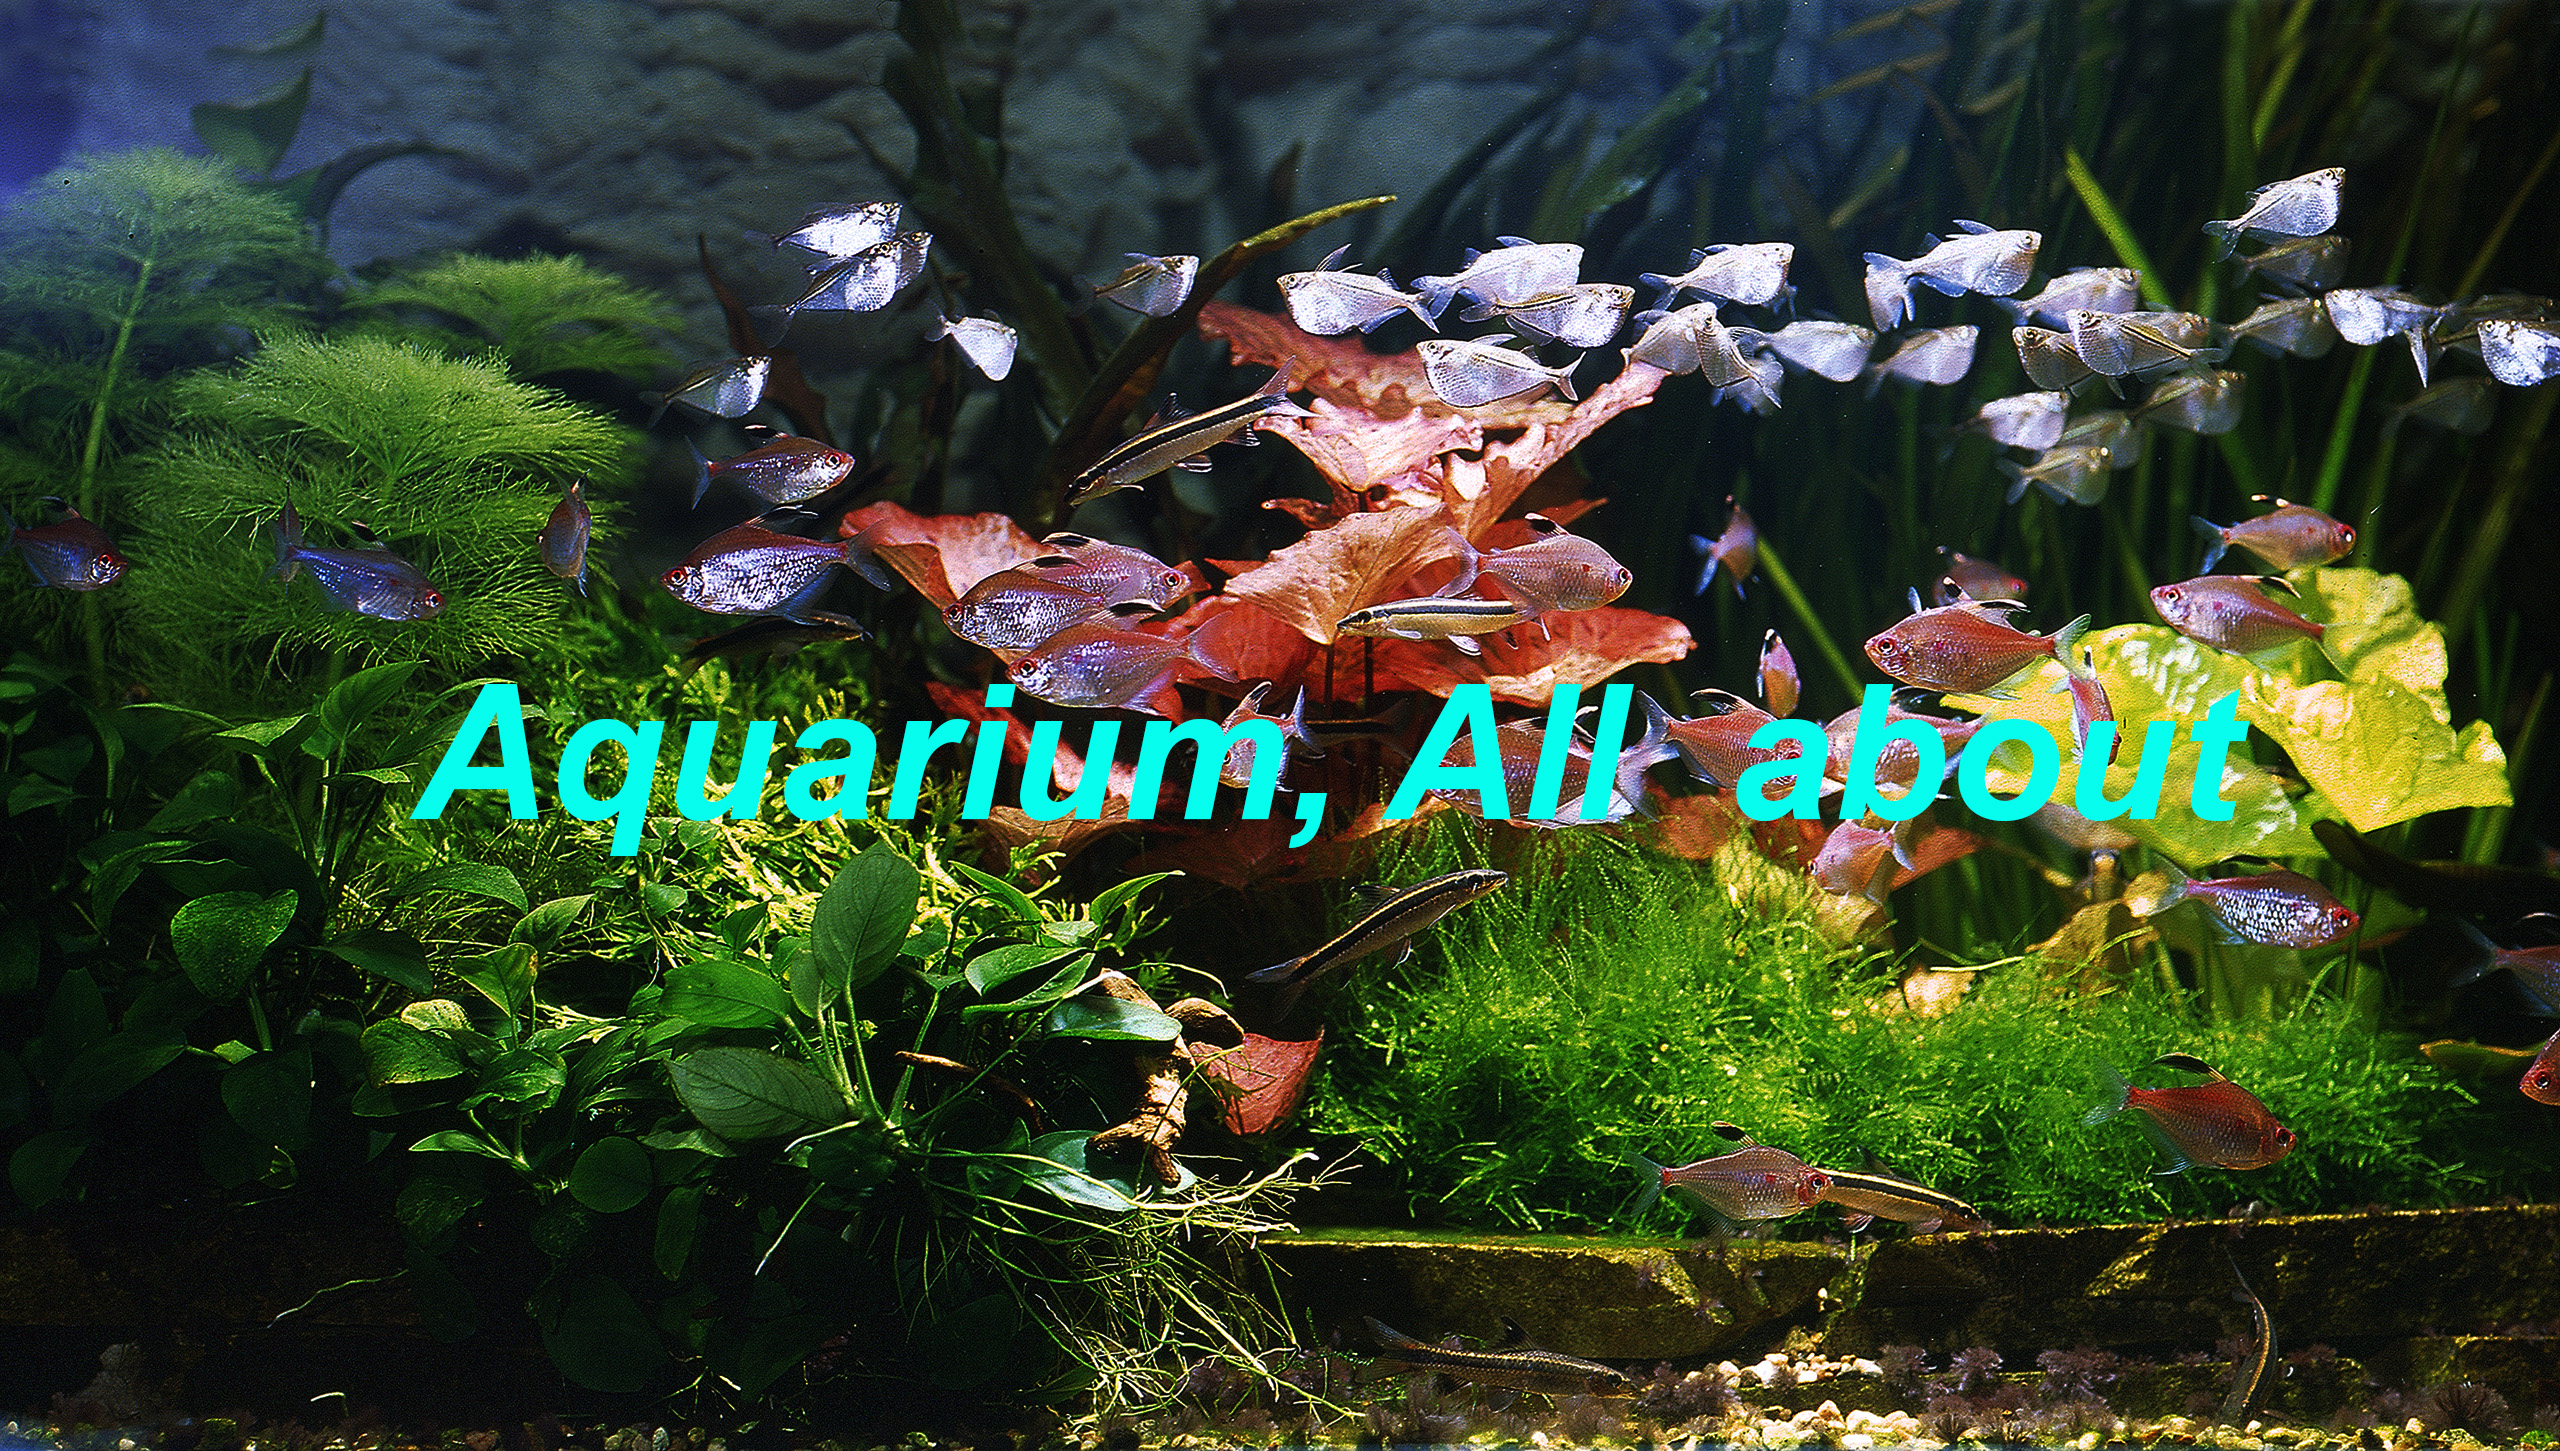 aquarium-all-about.jpg